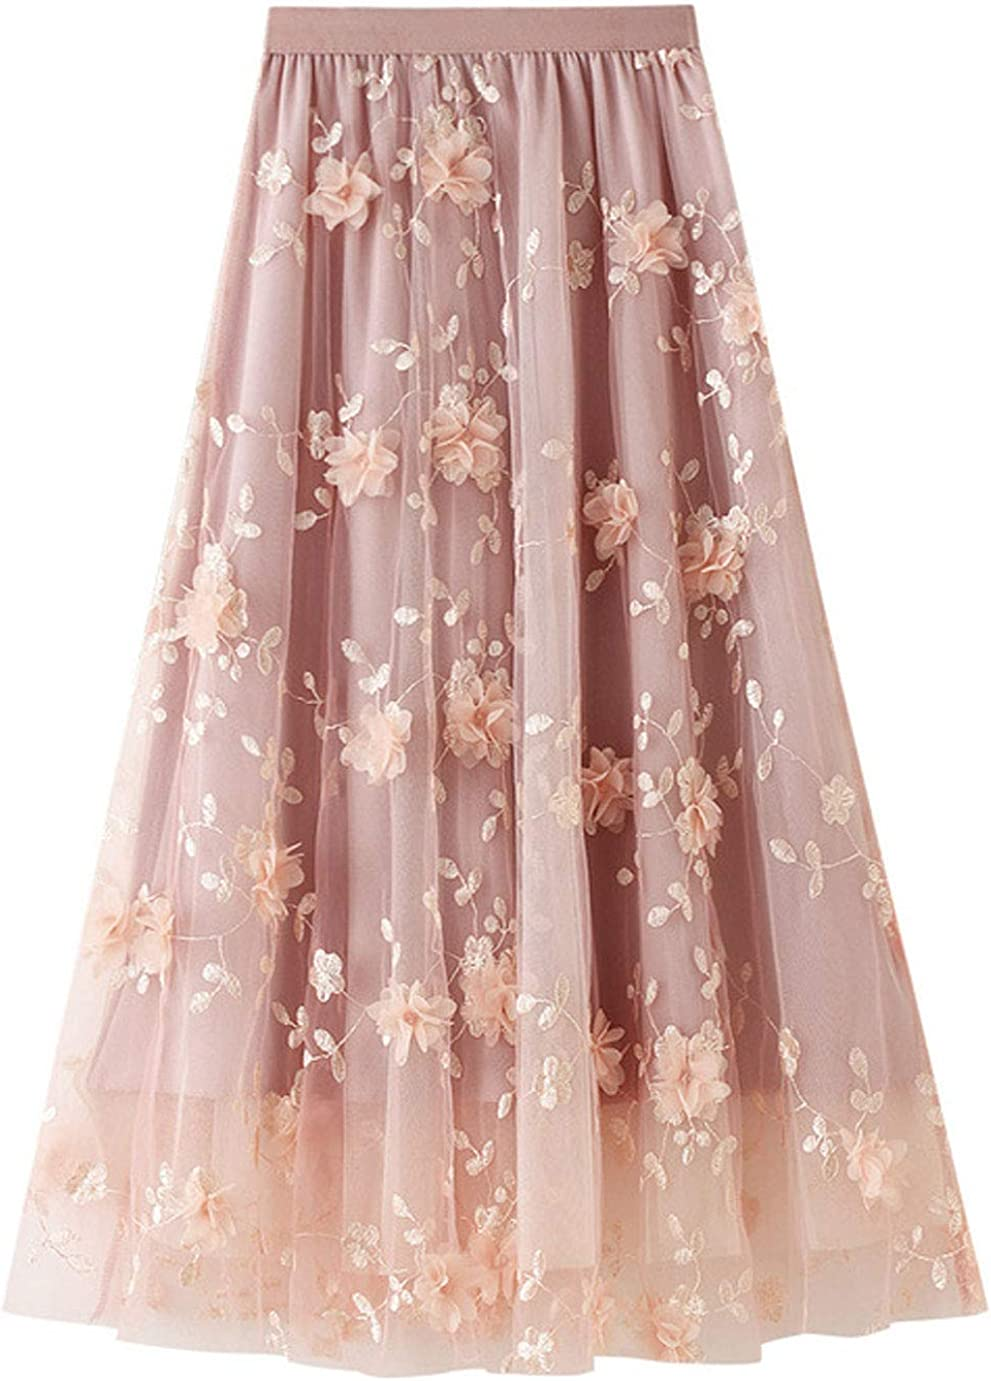 CHARTOU Women's High Waist Floral Lace Sheer Mesh Tulle Midi A-Line Pleated Layered Skirt